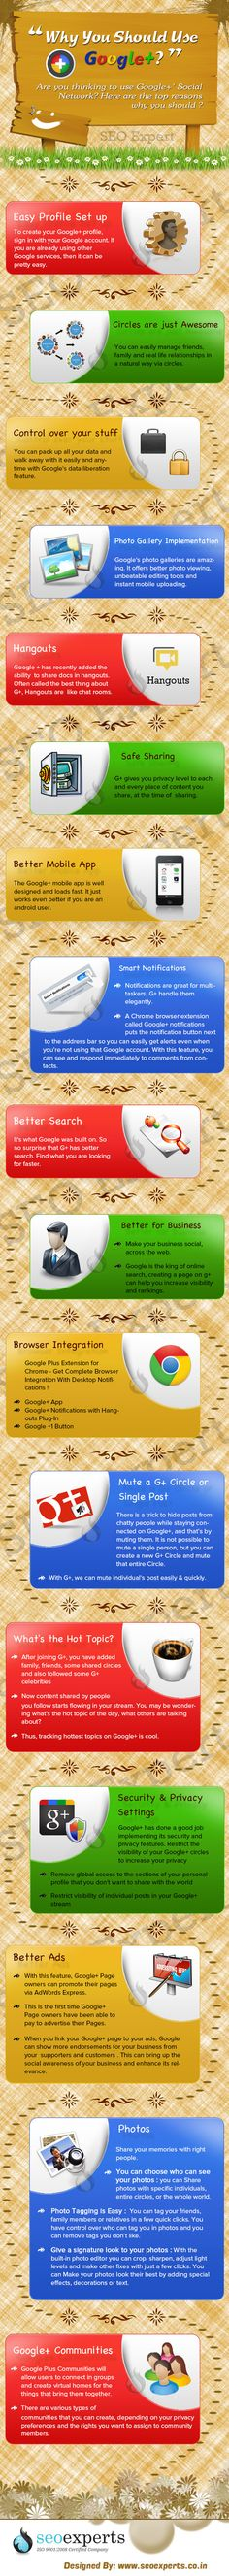 Are you still looking for reasons to use Google+ for all your social networking requirements? This infographic highlights reasons why Google+ is valuable asset to your business.  Credit: SEOExperts